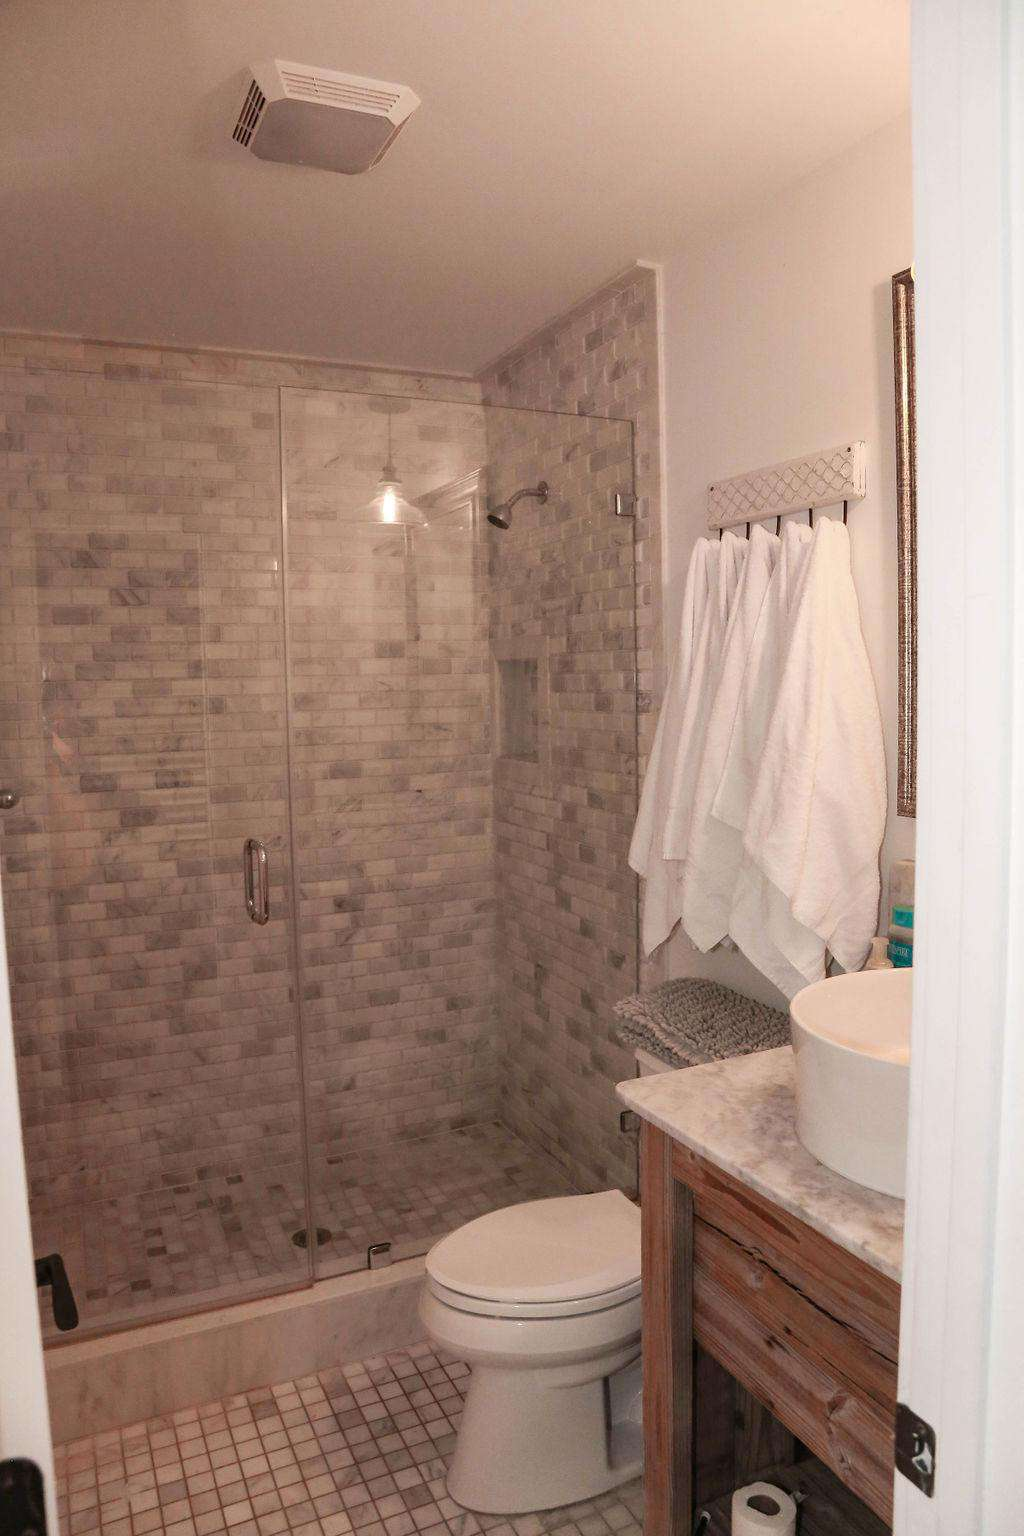 Br # 1 bathroom, white marble shower, glass doors